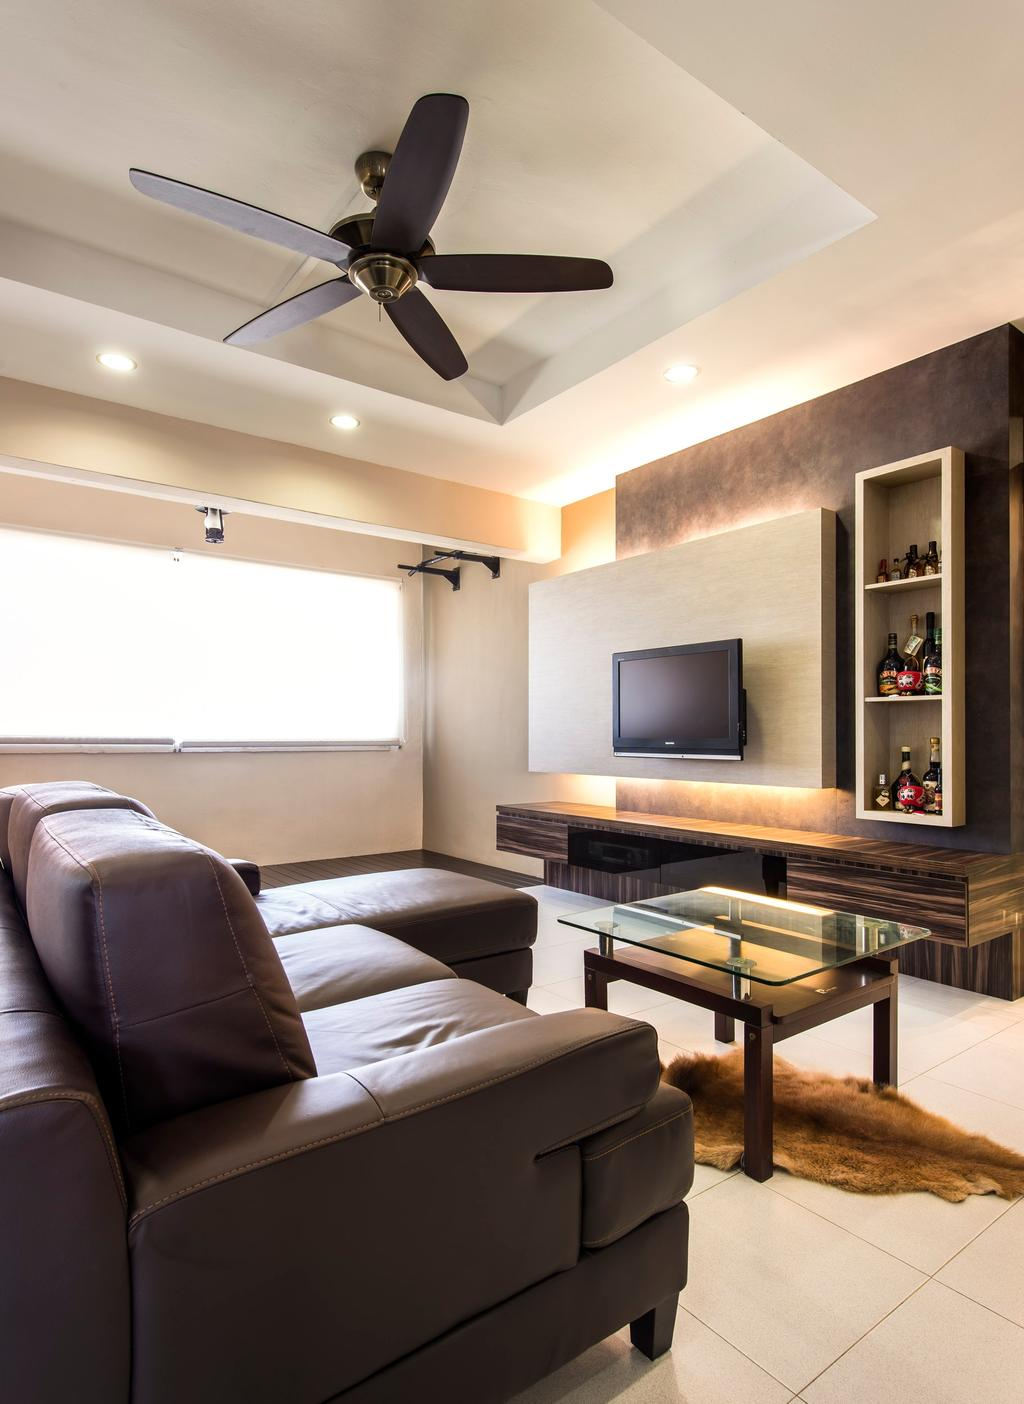 Contemporary, Condo, Living Room, Bedok Reservoir, Interior Designer, Space Factor, Ceiling Fan, False Ceiling, Sofa, Coffee Table, Chair, Table, Glass Table, Tv Console, Feature Wall, Concealed Lighting, Shelf, Shelves, Display Shelf, Brown, Electronics, Entertainment Center, Home Theater, Indoors, Interior Design, Room